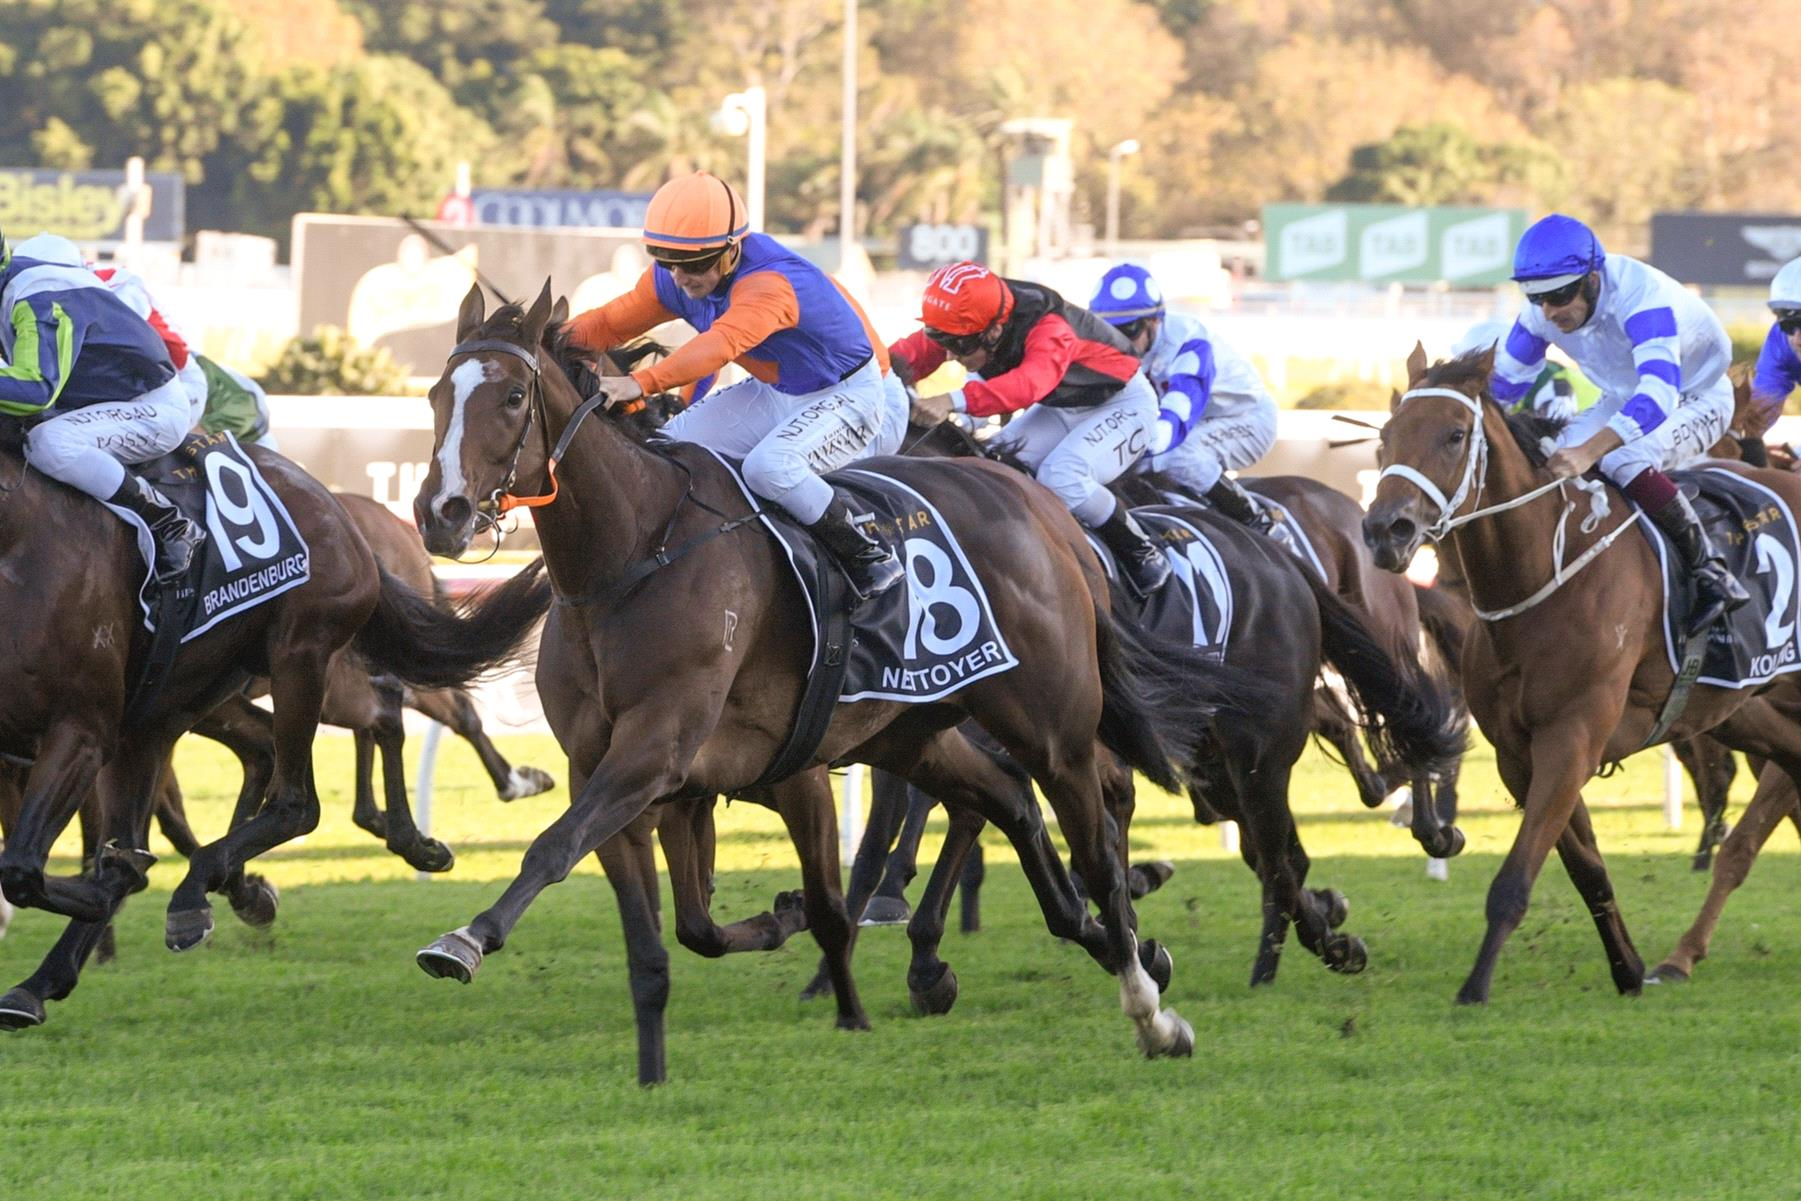 Nettoyer can find winning form on Saturday.